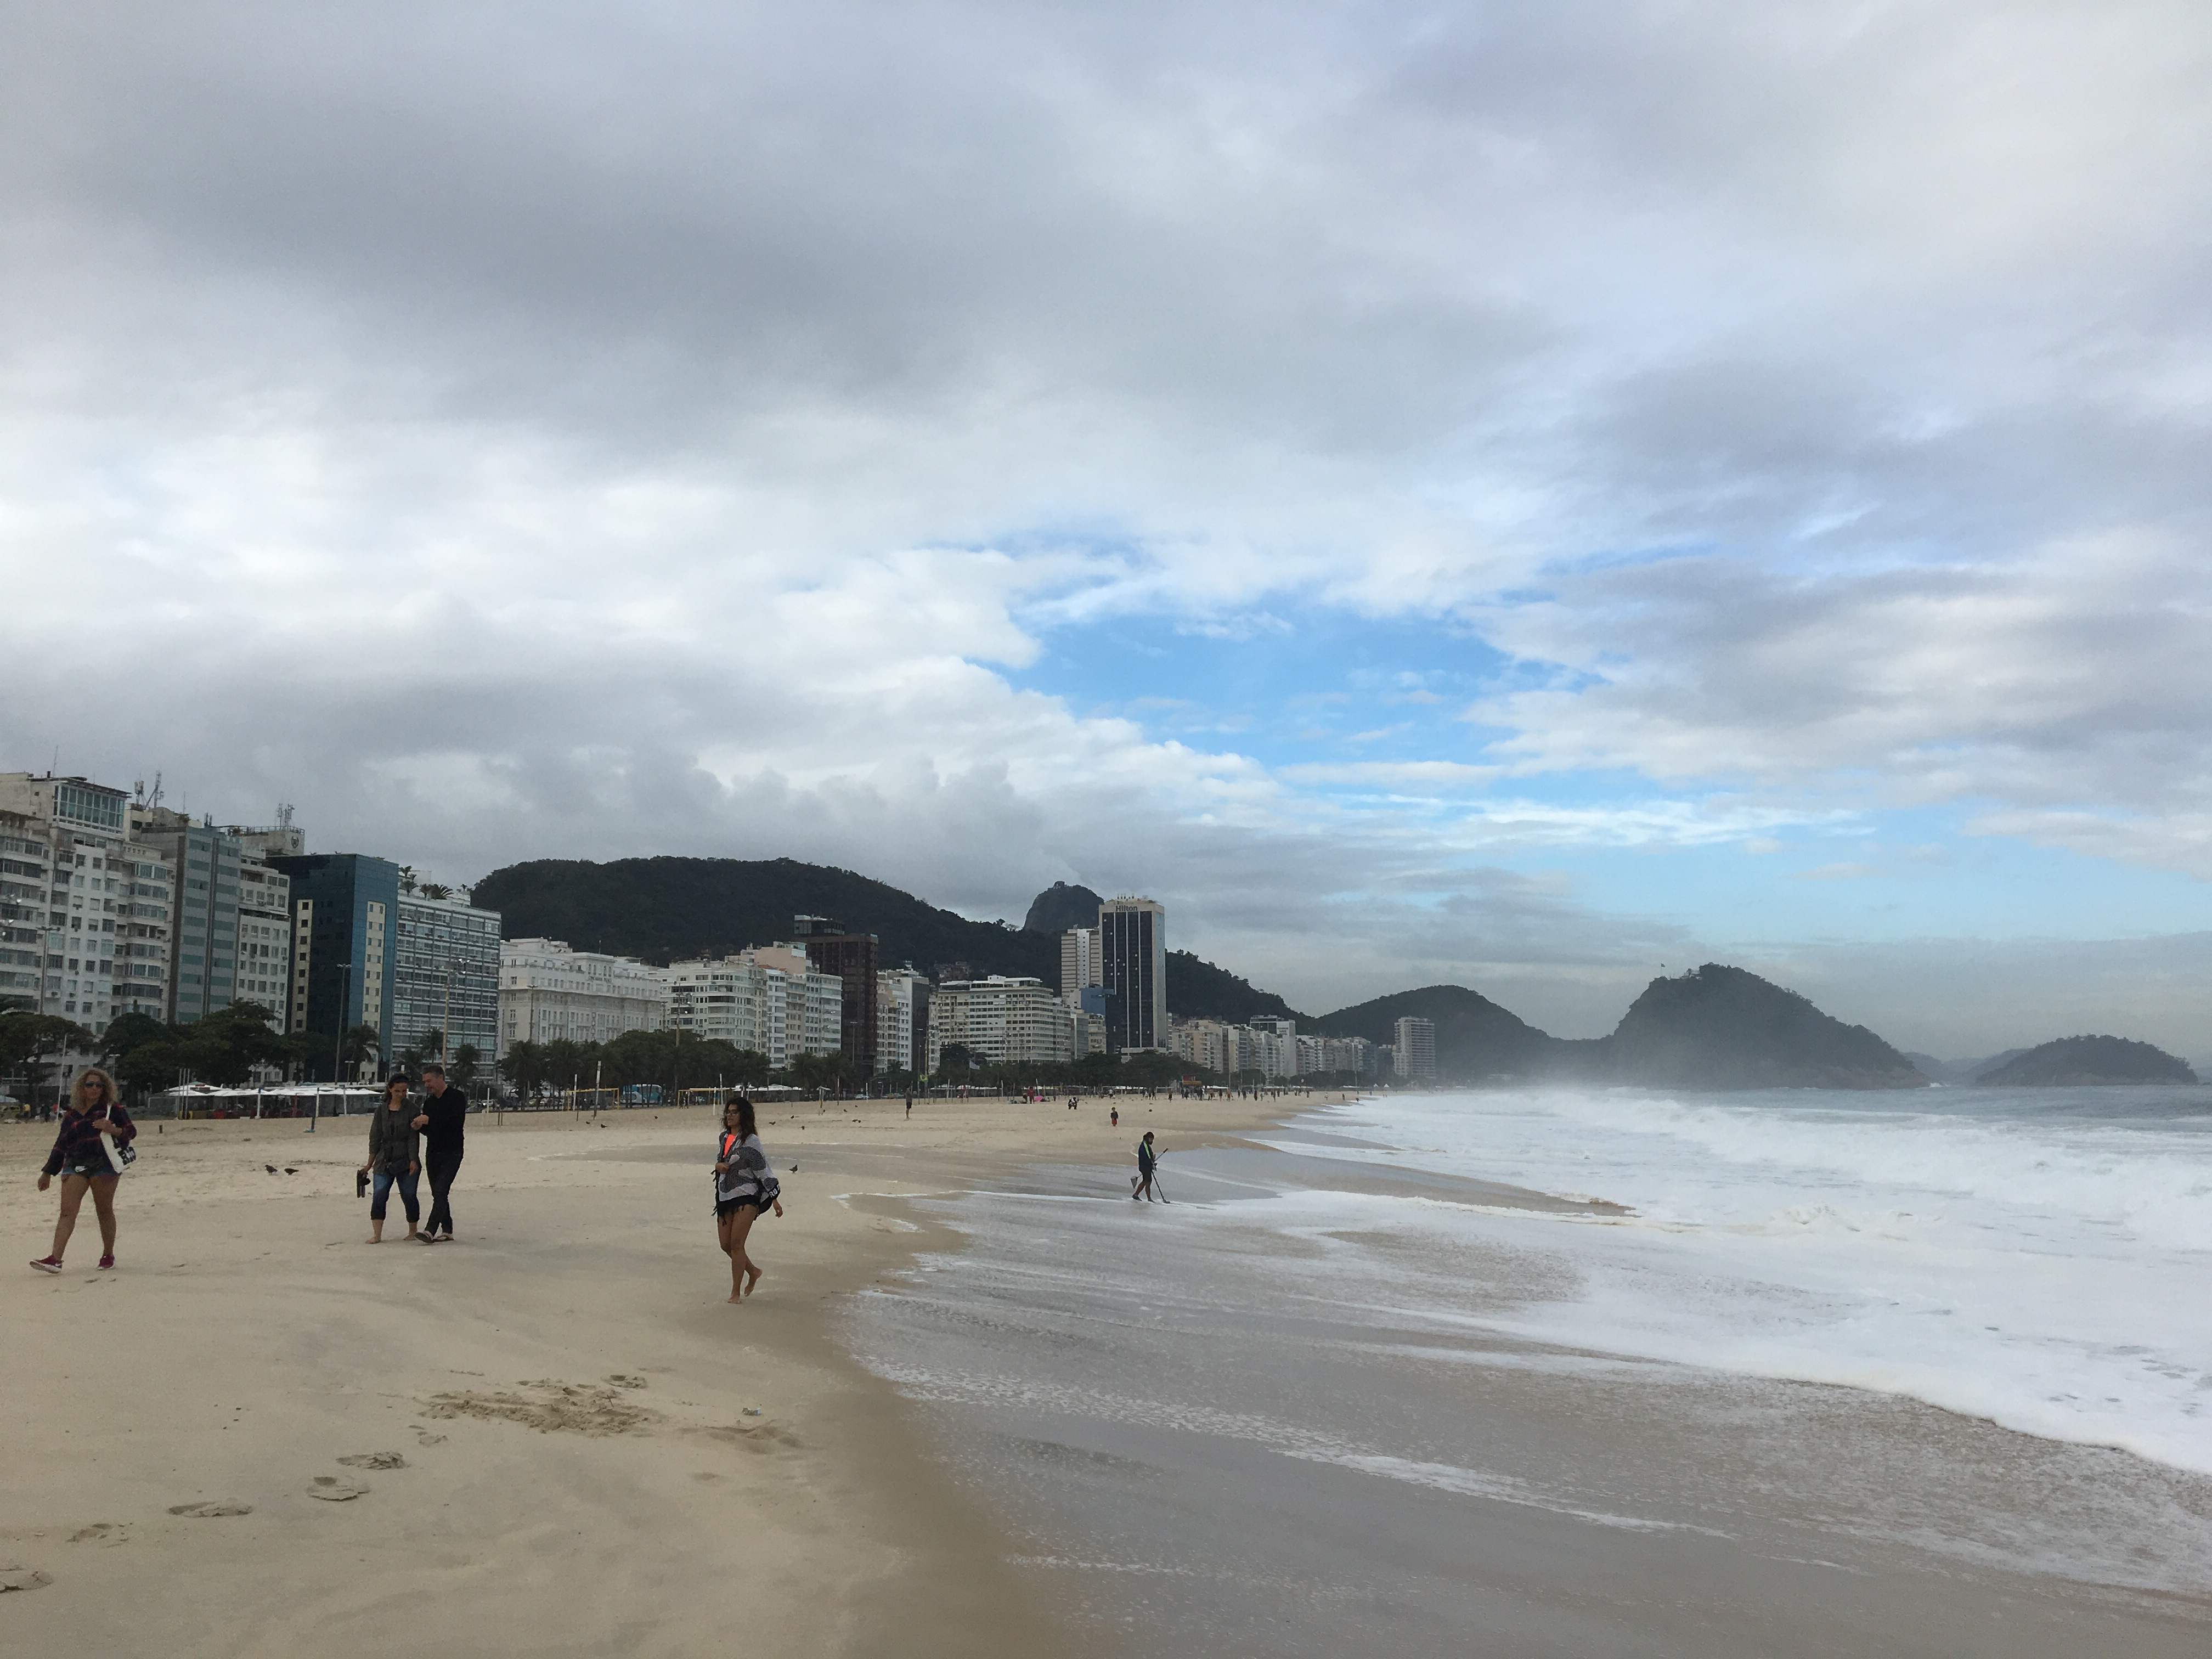 The Copacabana beach in winter.